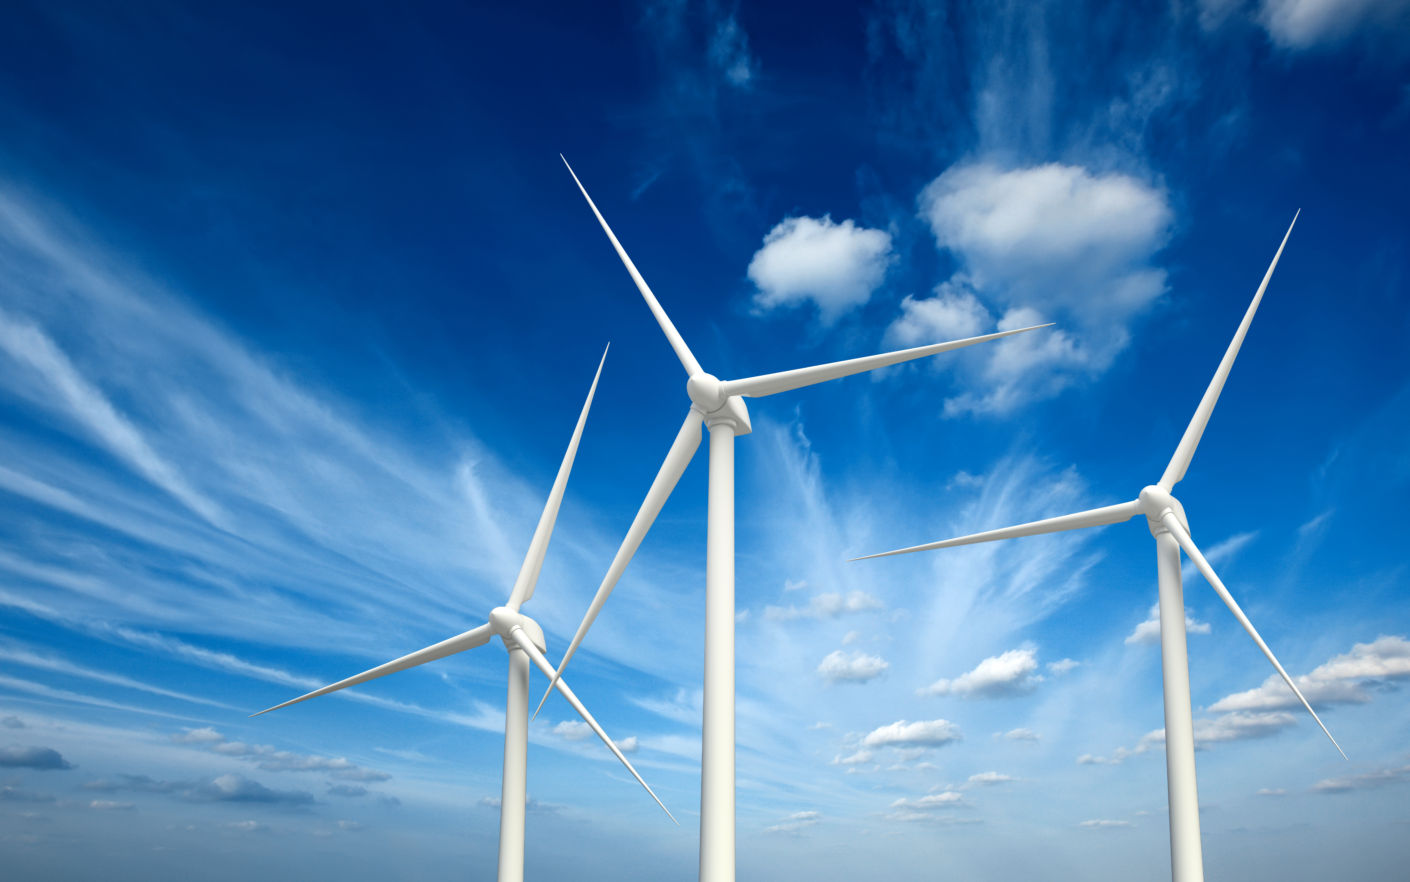 wind turbines 705x441@2x - Utilities & Resources